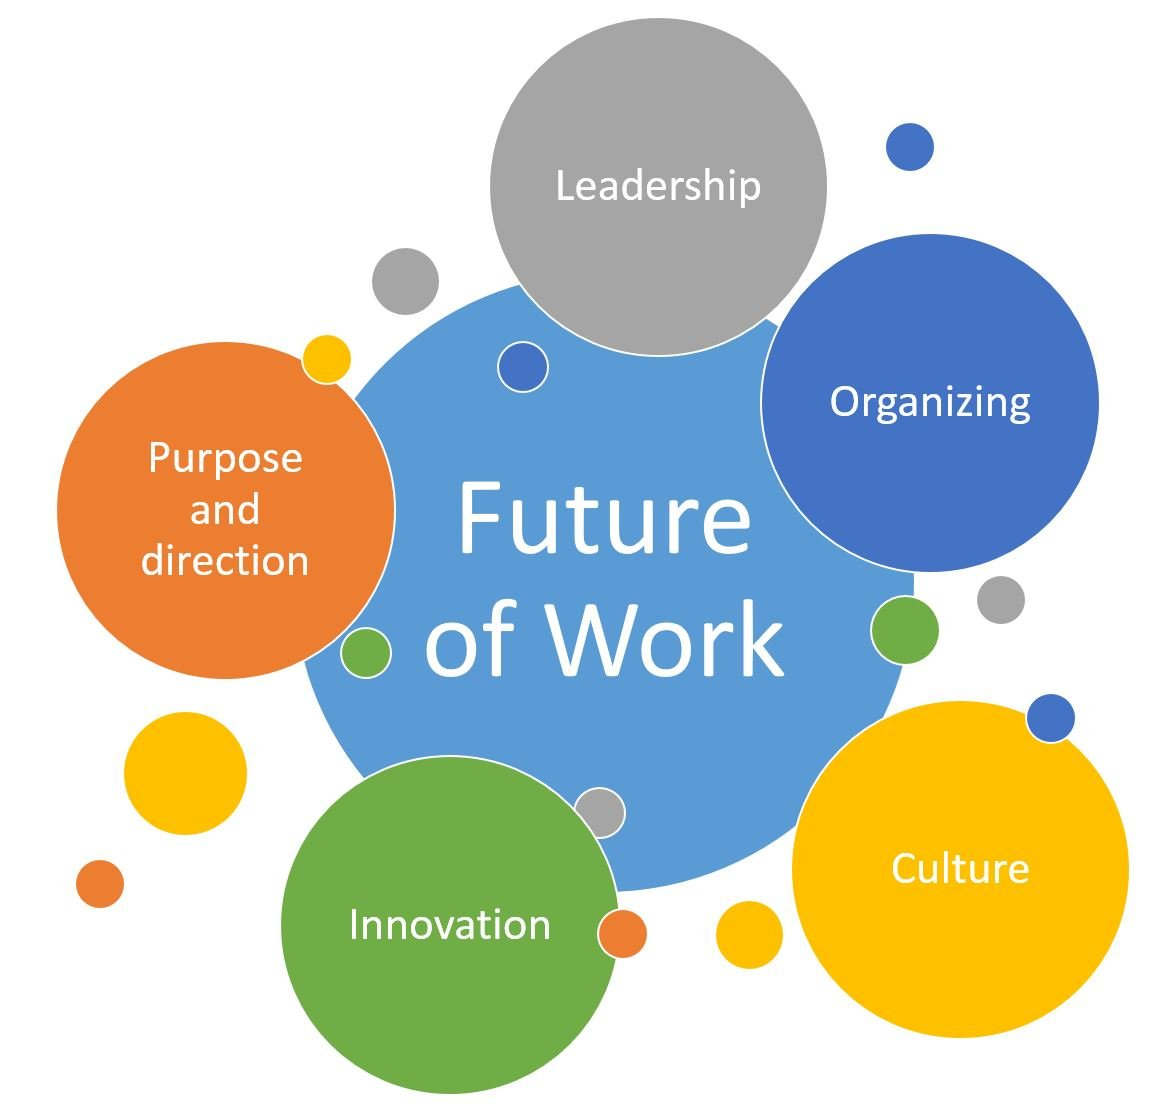 course get ready for the future of work bloch oslash stergaard future of work and new leadership requires an updated mindset and a new set of skills and behaviors we ll focus on these 5 areas and discuss the mindset